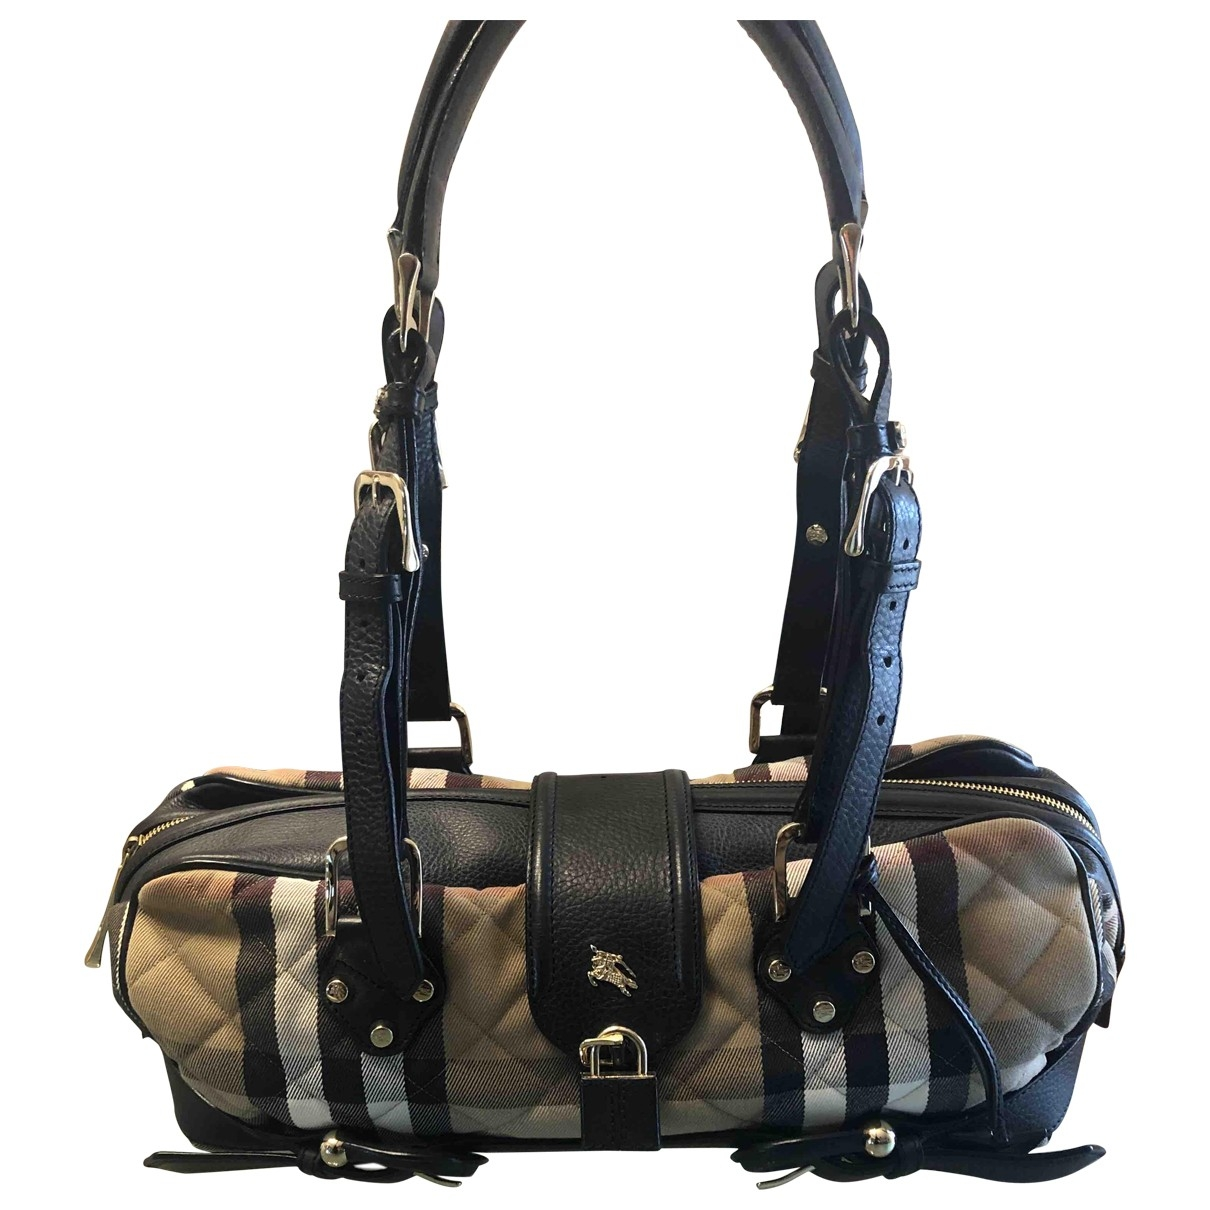 Burberry \N Black Cloth handbag for Women \N